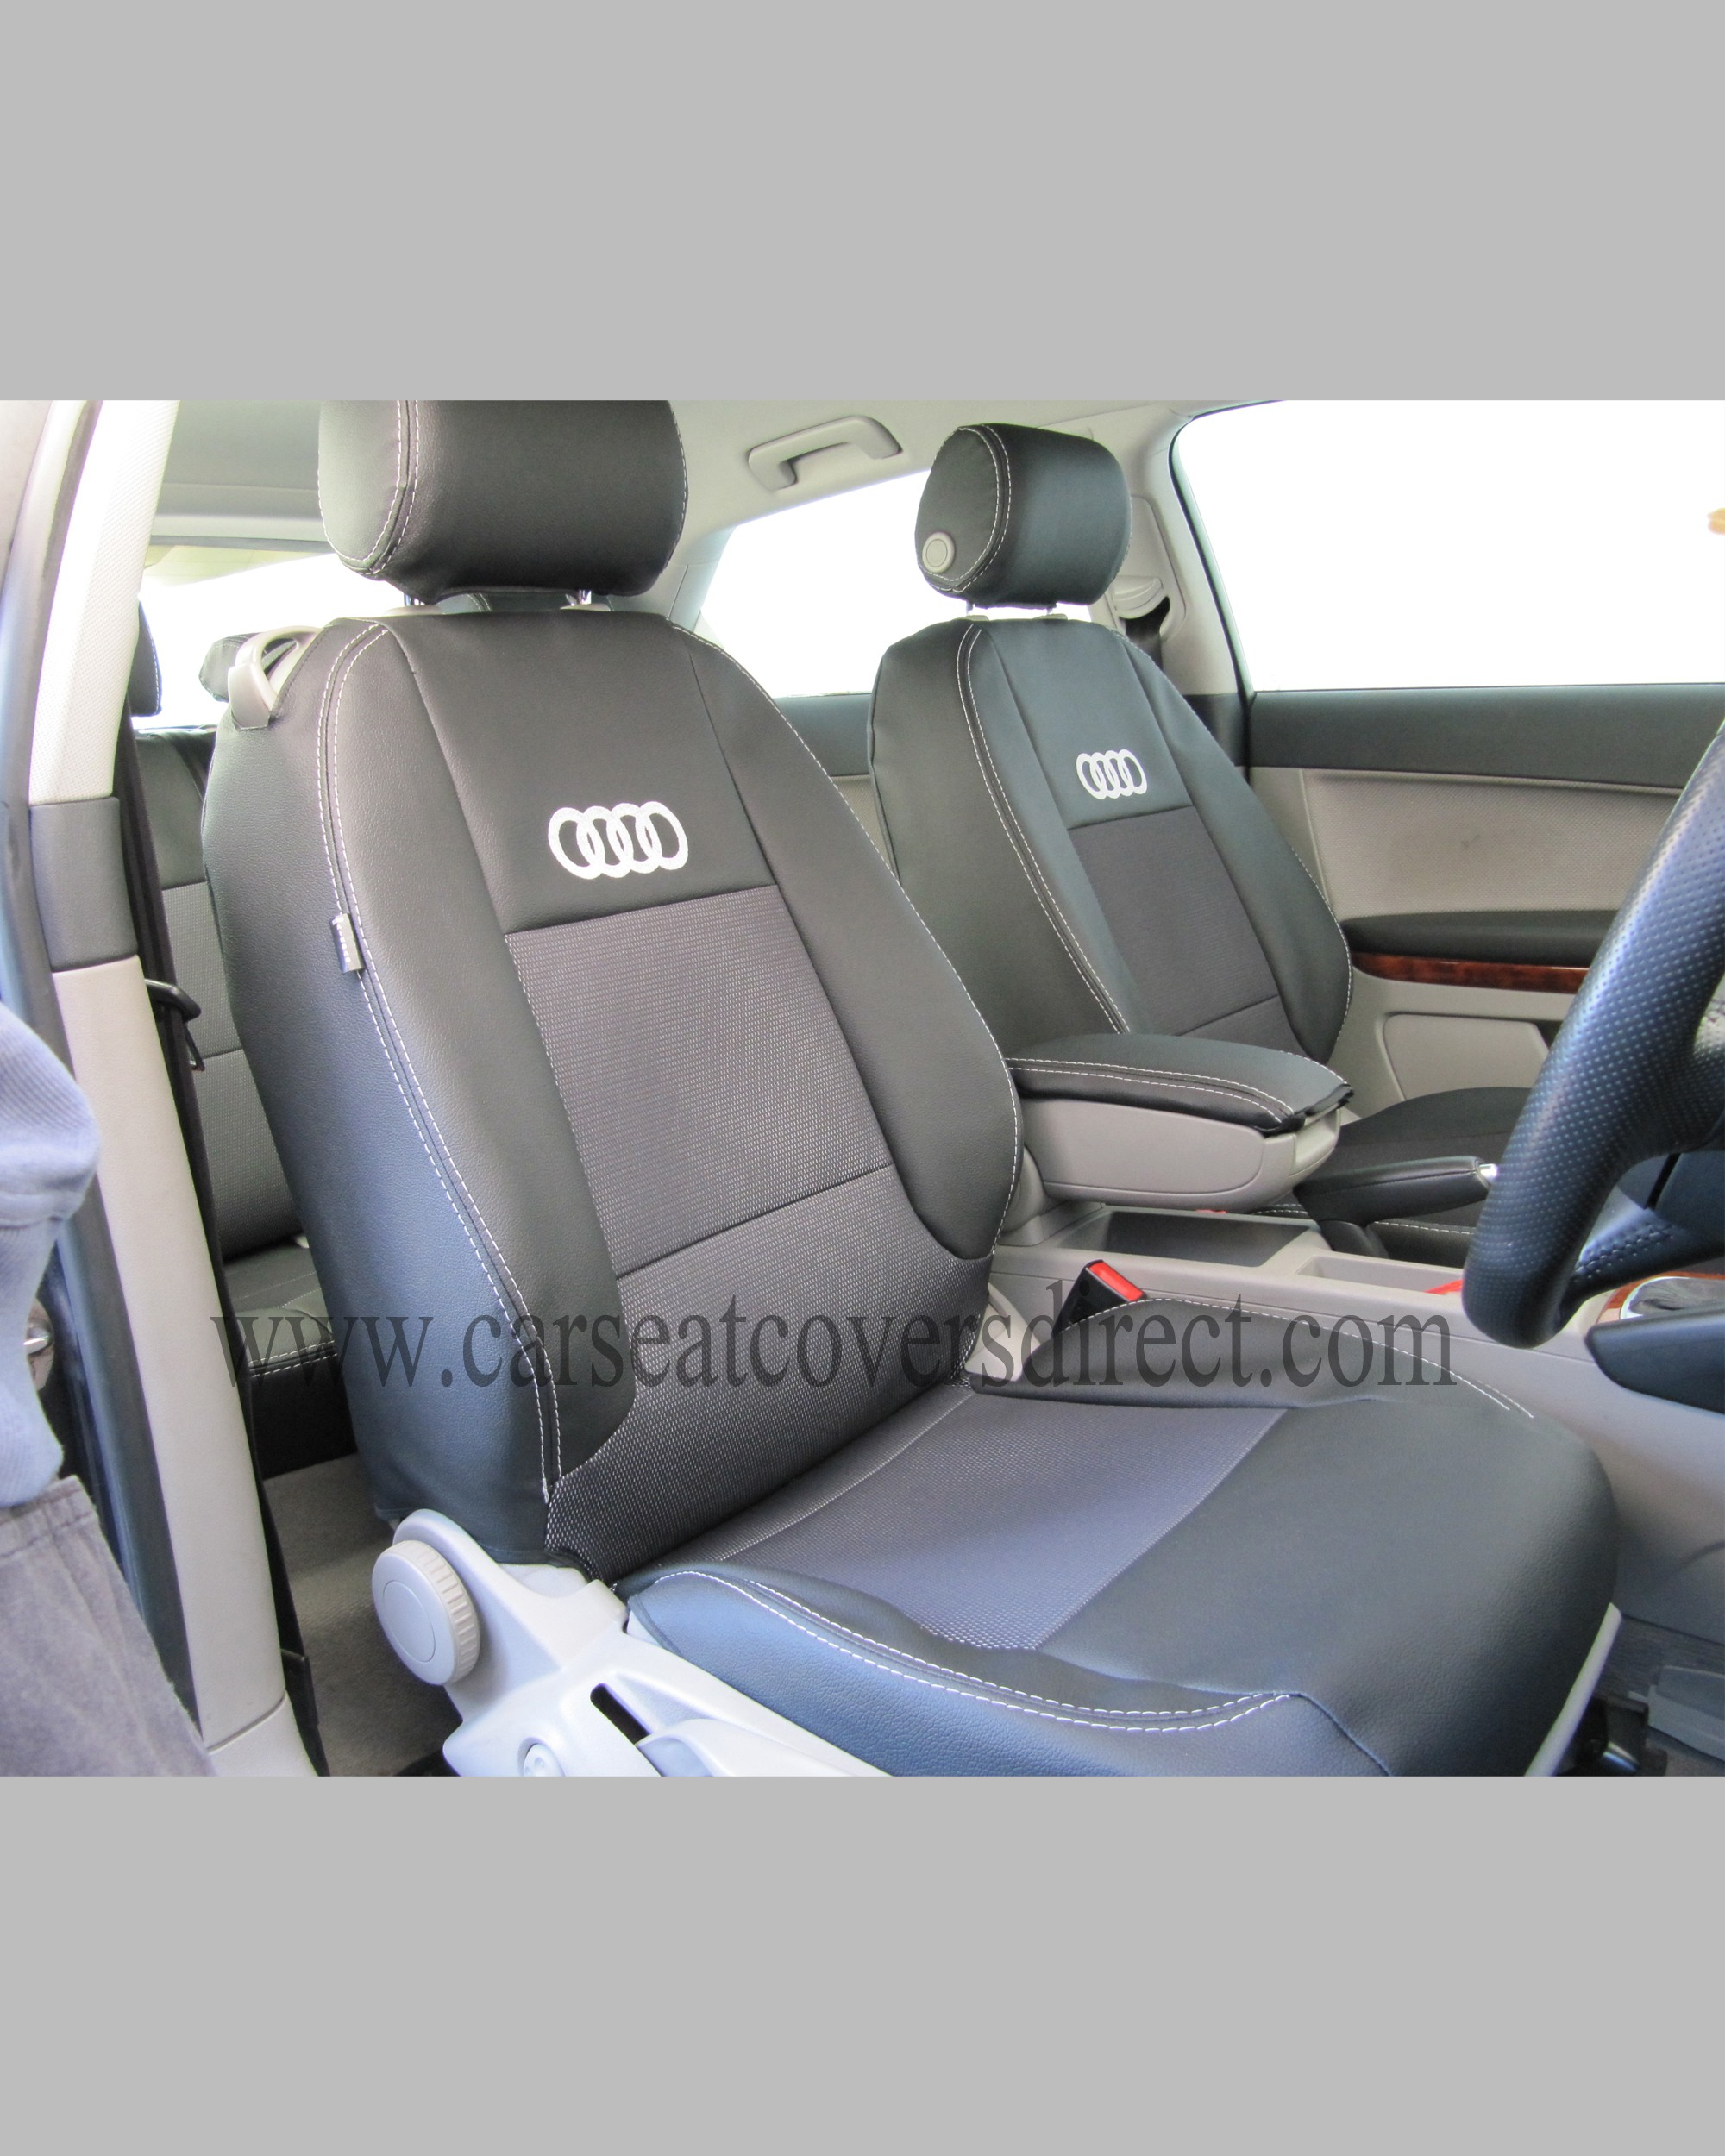 Audi A3 Seat Covers - Black  - 1st Generation_4